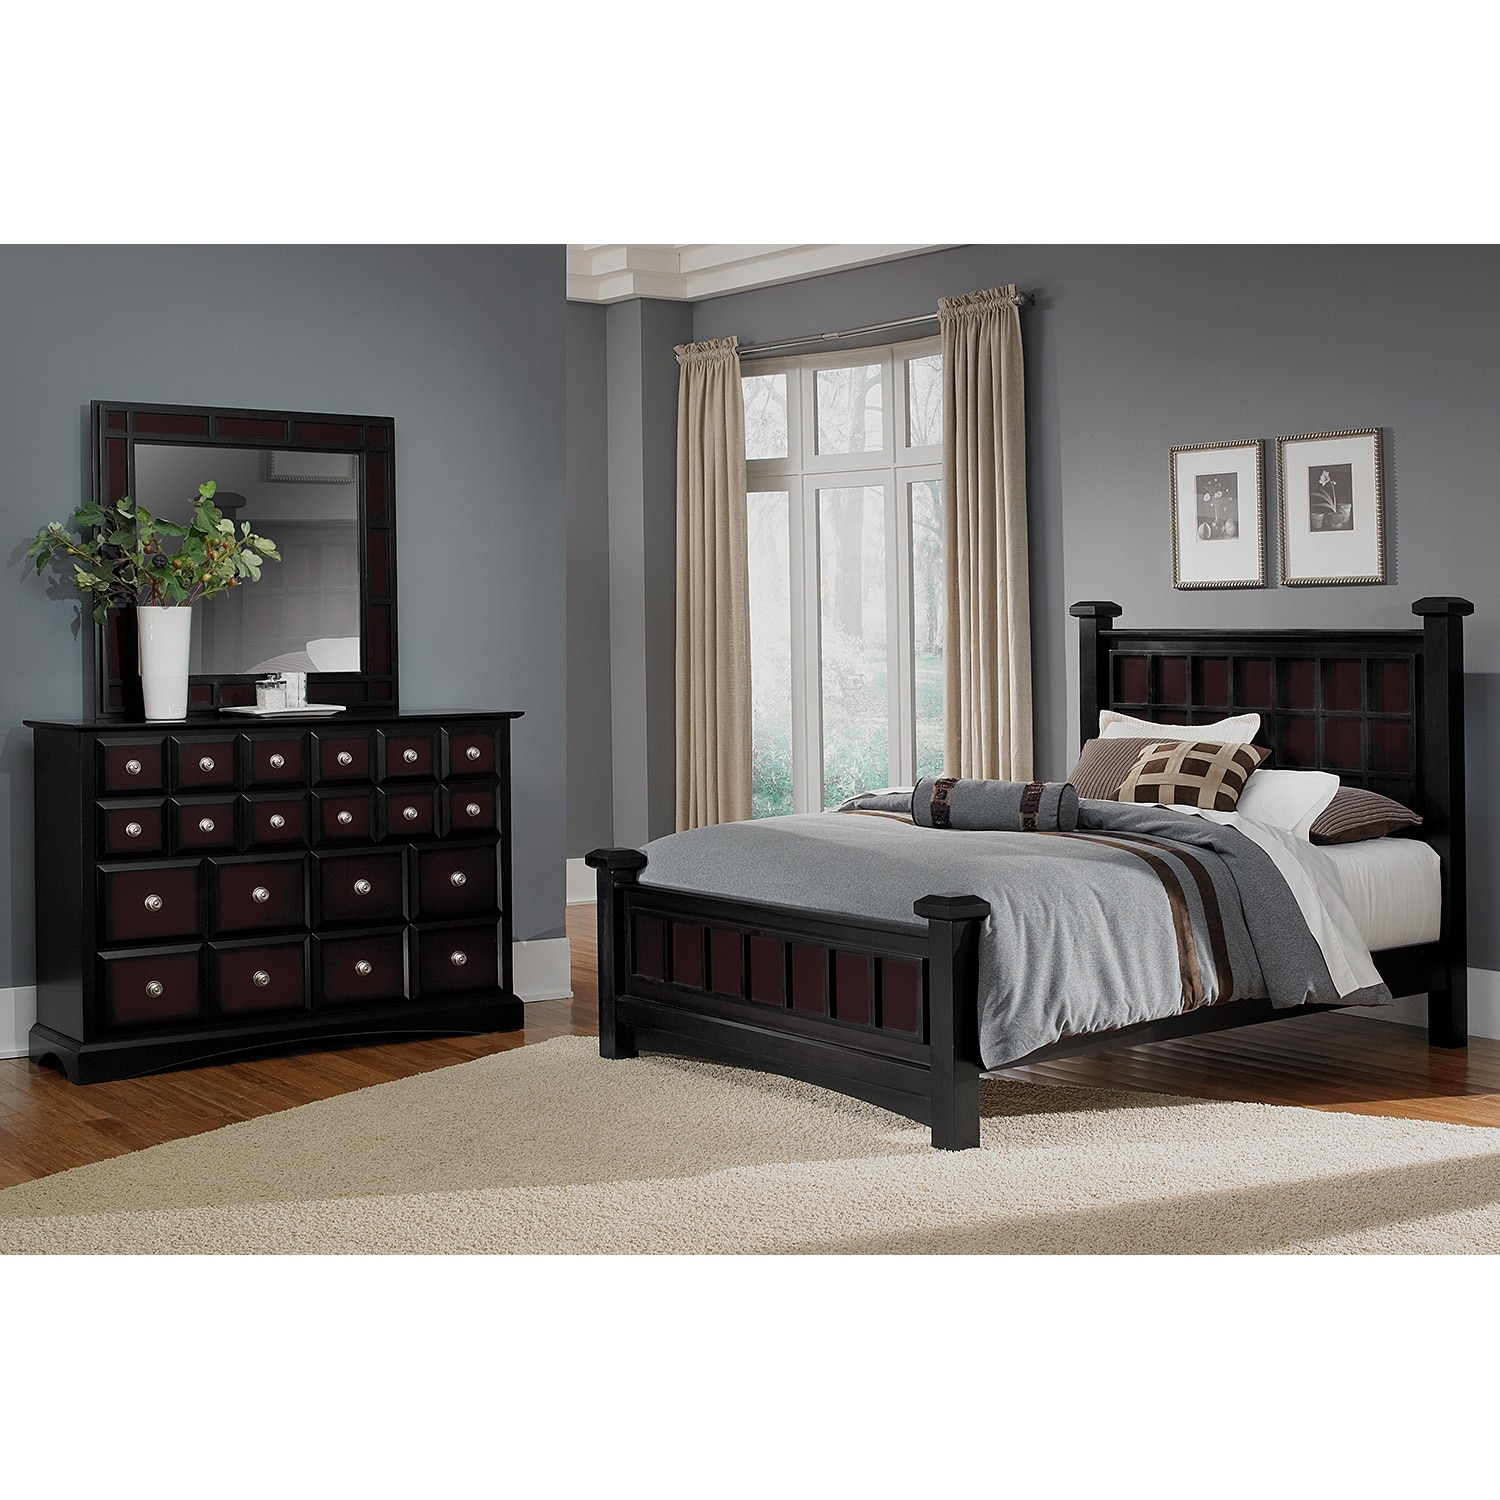 Bedroom Furniture - Winchester 5-Piece Queen Bedroom Set - Black and Burnished Merlot